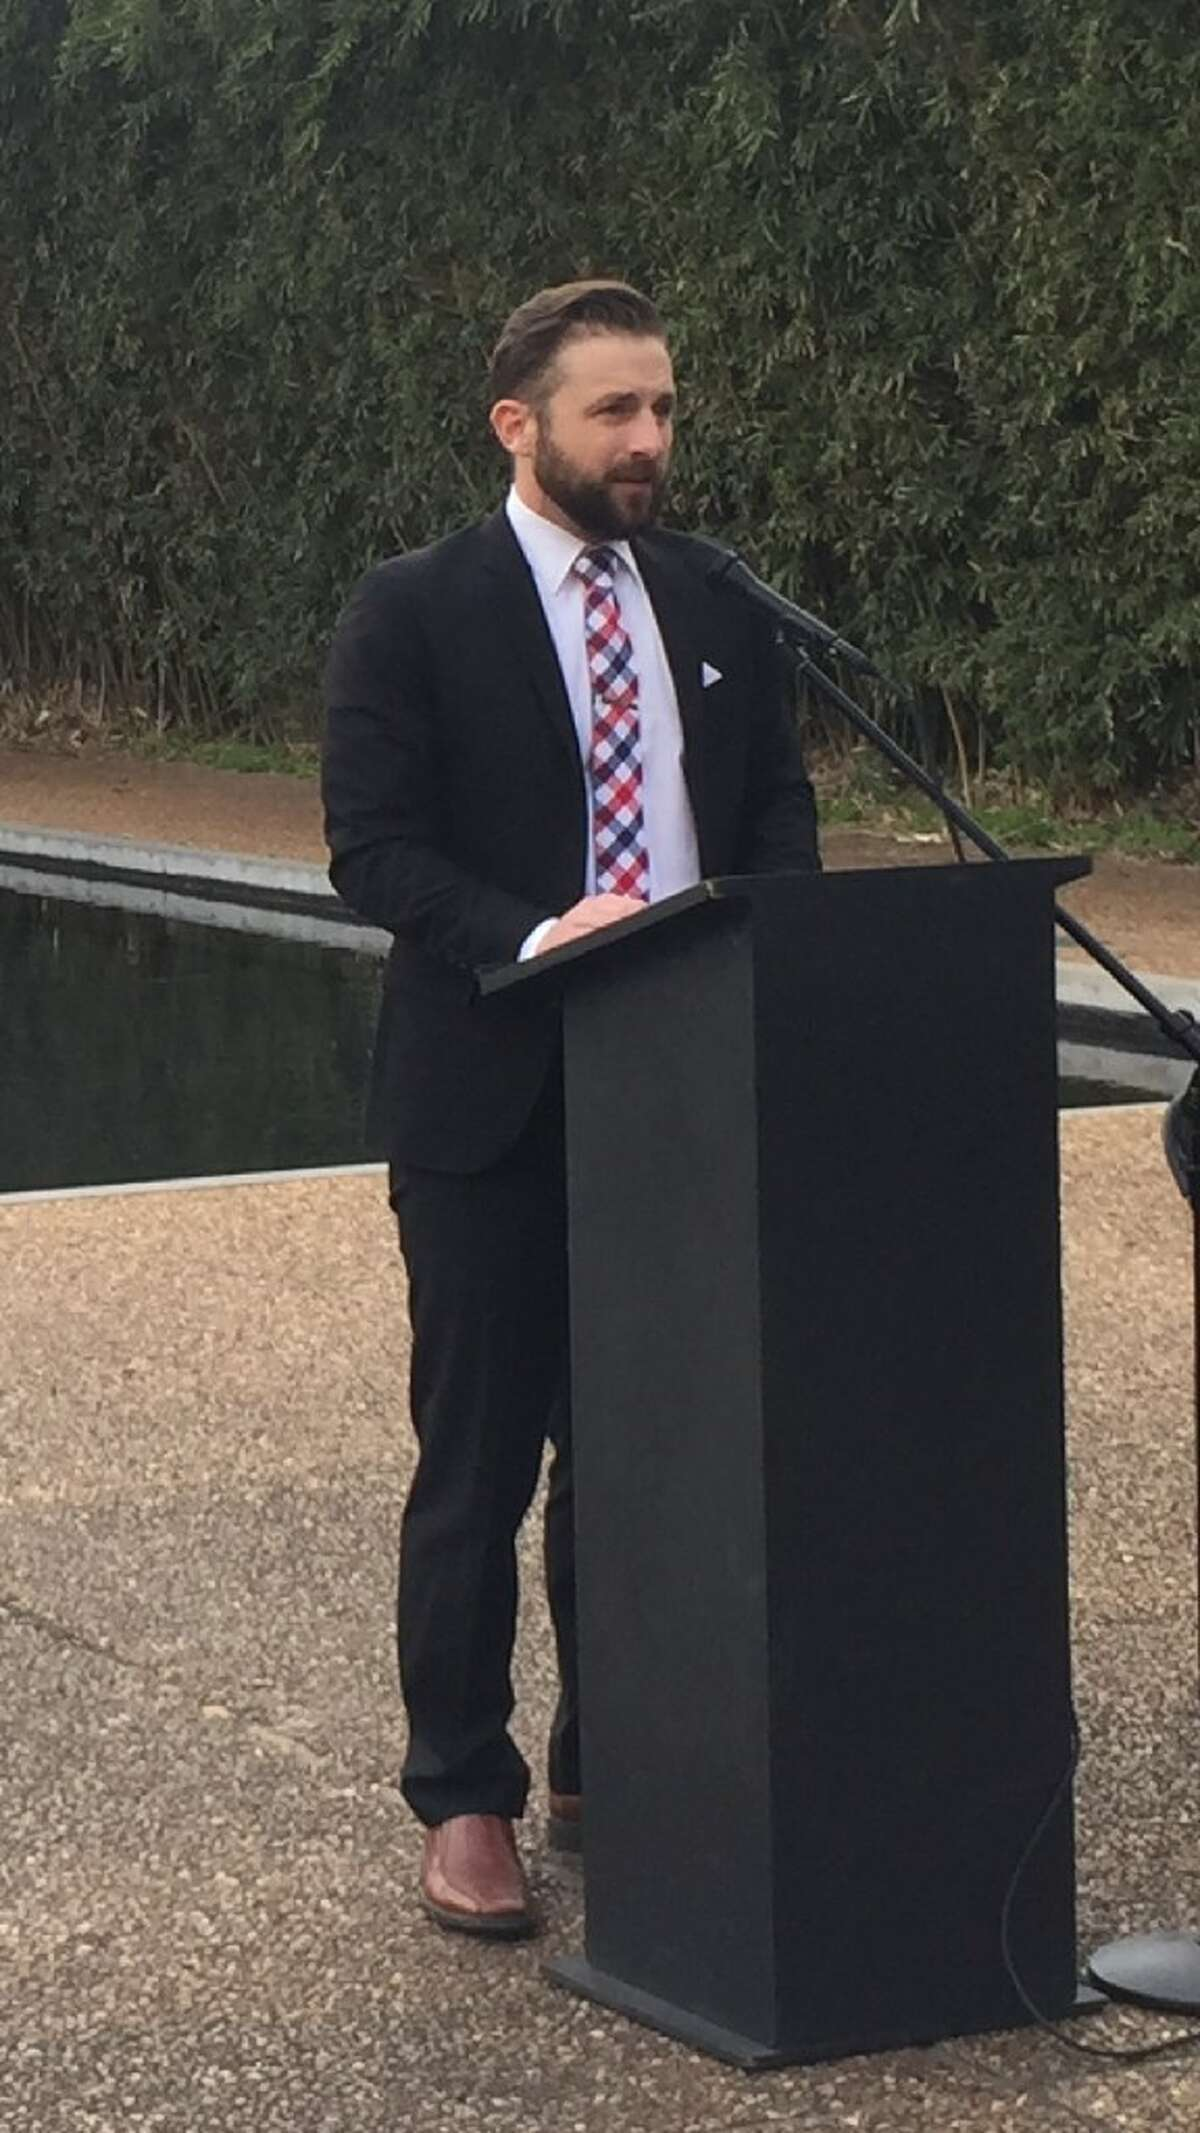 Jay Jenkins, an attorney for the Texas Criminal Justice Coalition, at a press conference in support of raising the age of criminal responsibility from 17 to 18.